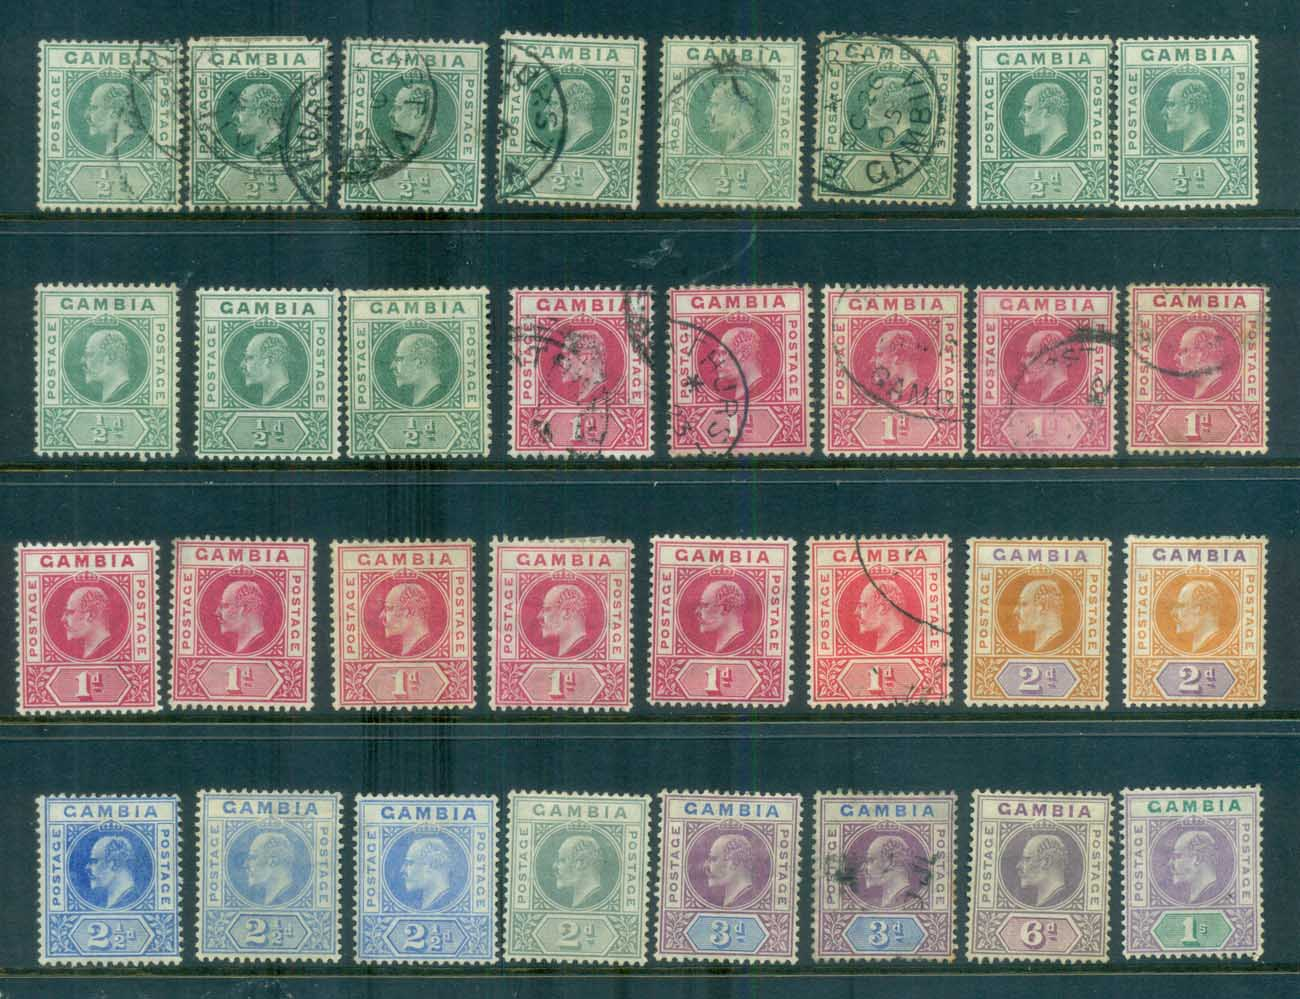 Gambia 1902-09 KEVII Asst (faults) MH/FU lot79874